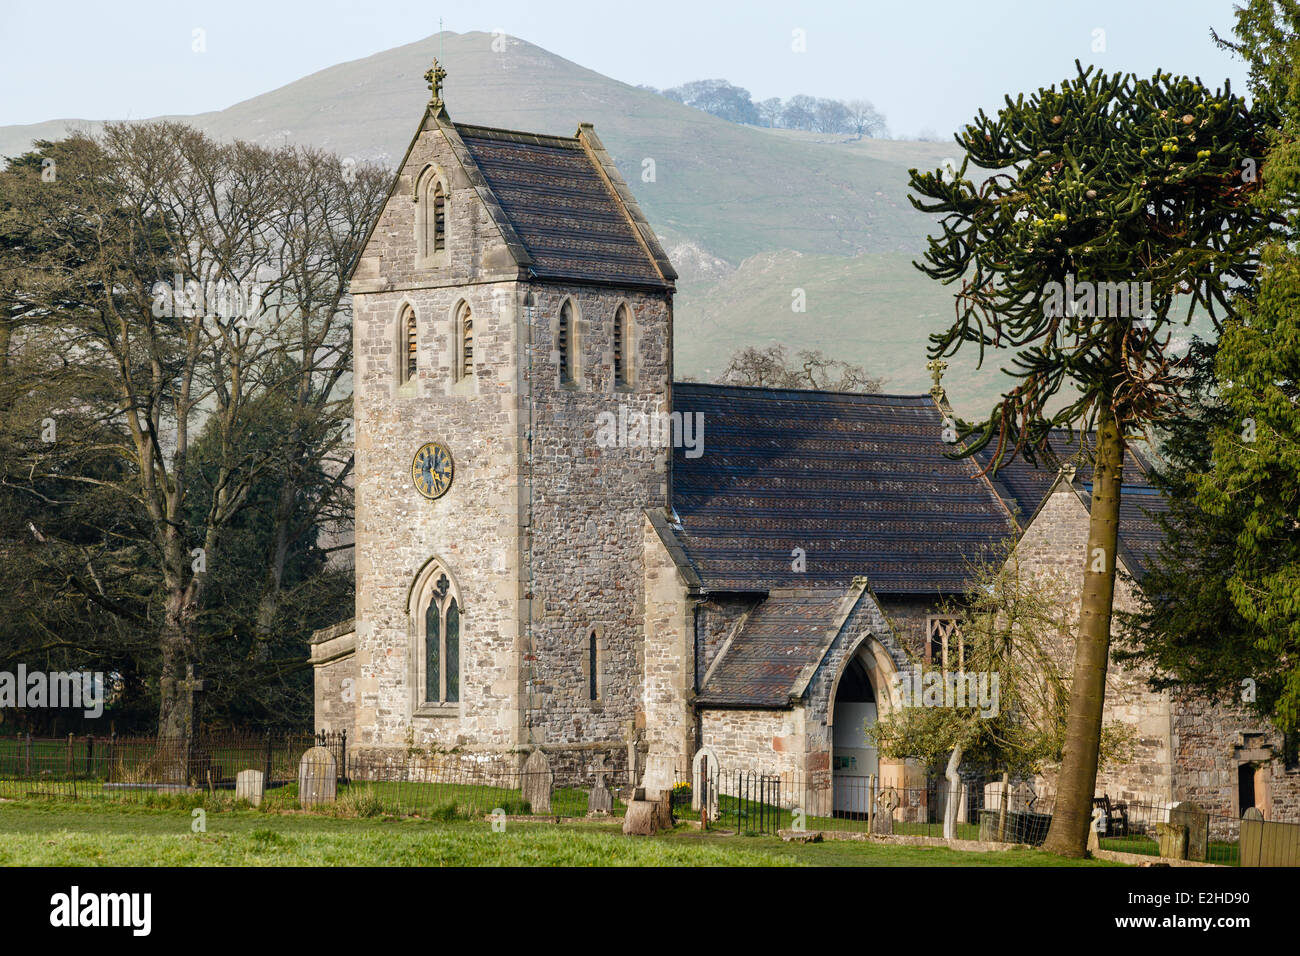 Church of the Holy Cross, Ilam, Peak District National Park, Staffordshire - Stock Image